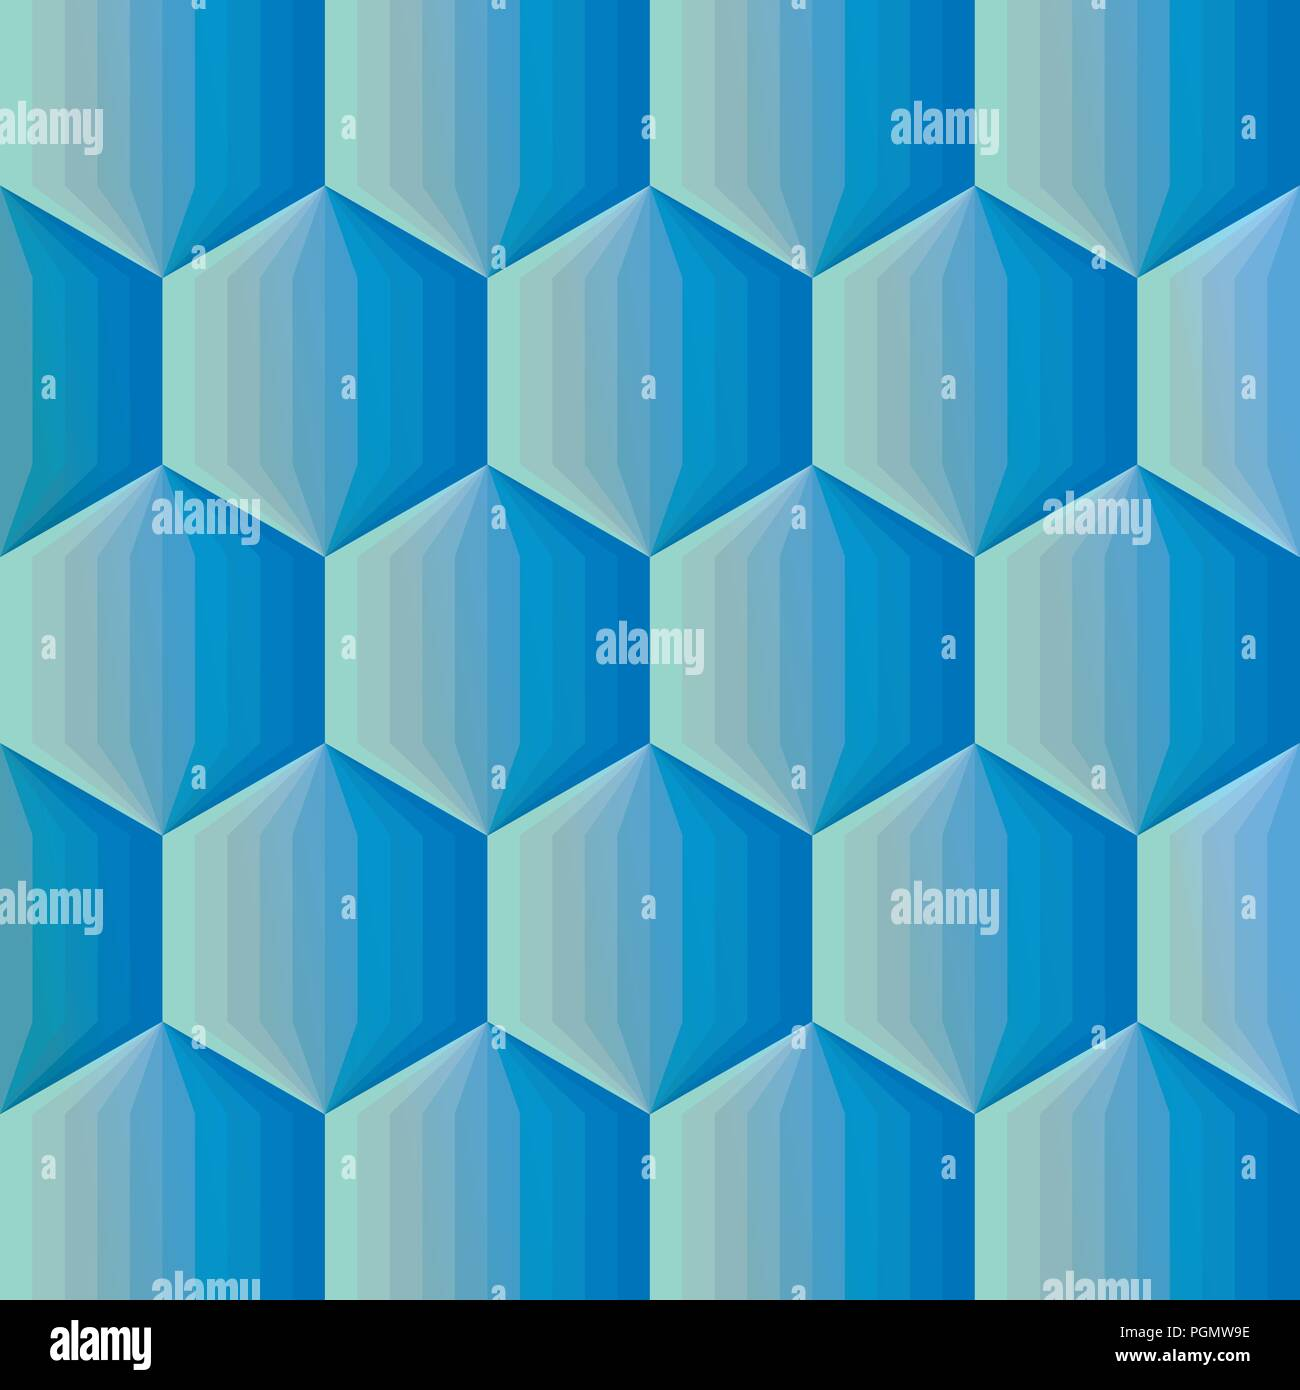 Smooth Color Gradient Hexagon Mosaic Background Vector Illustration